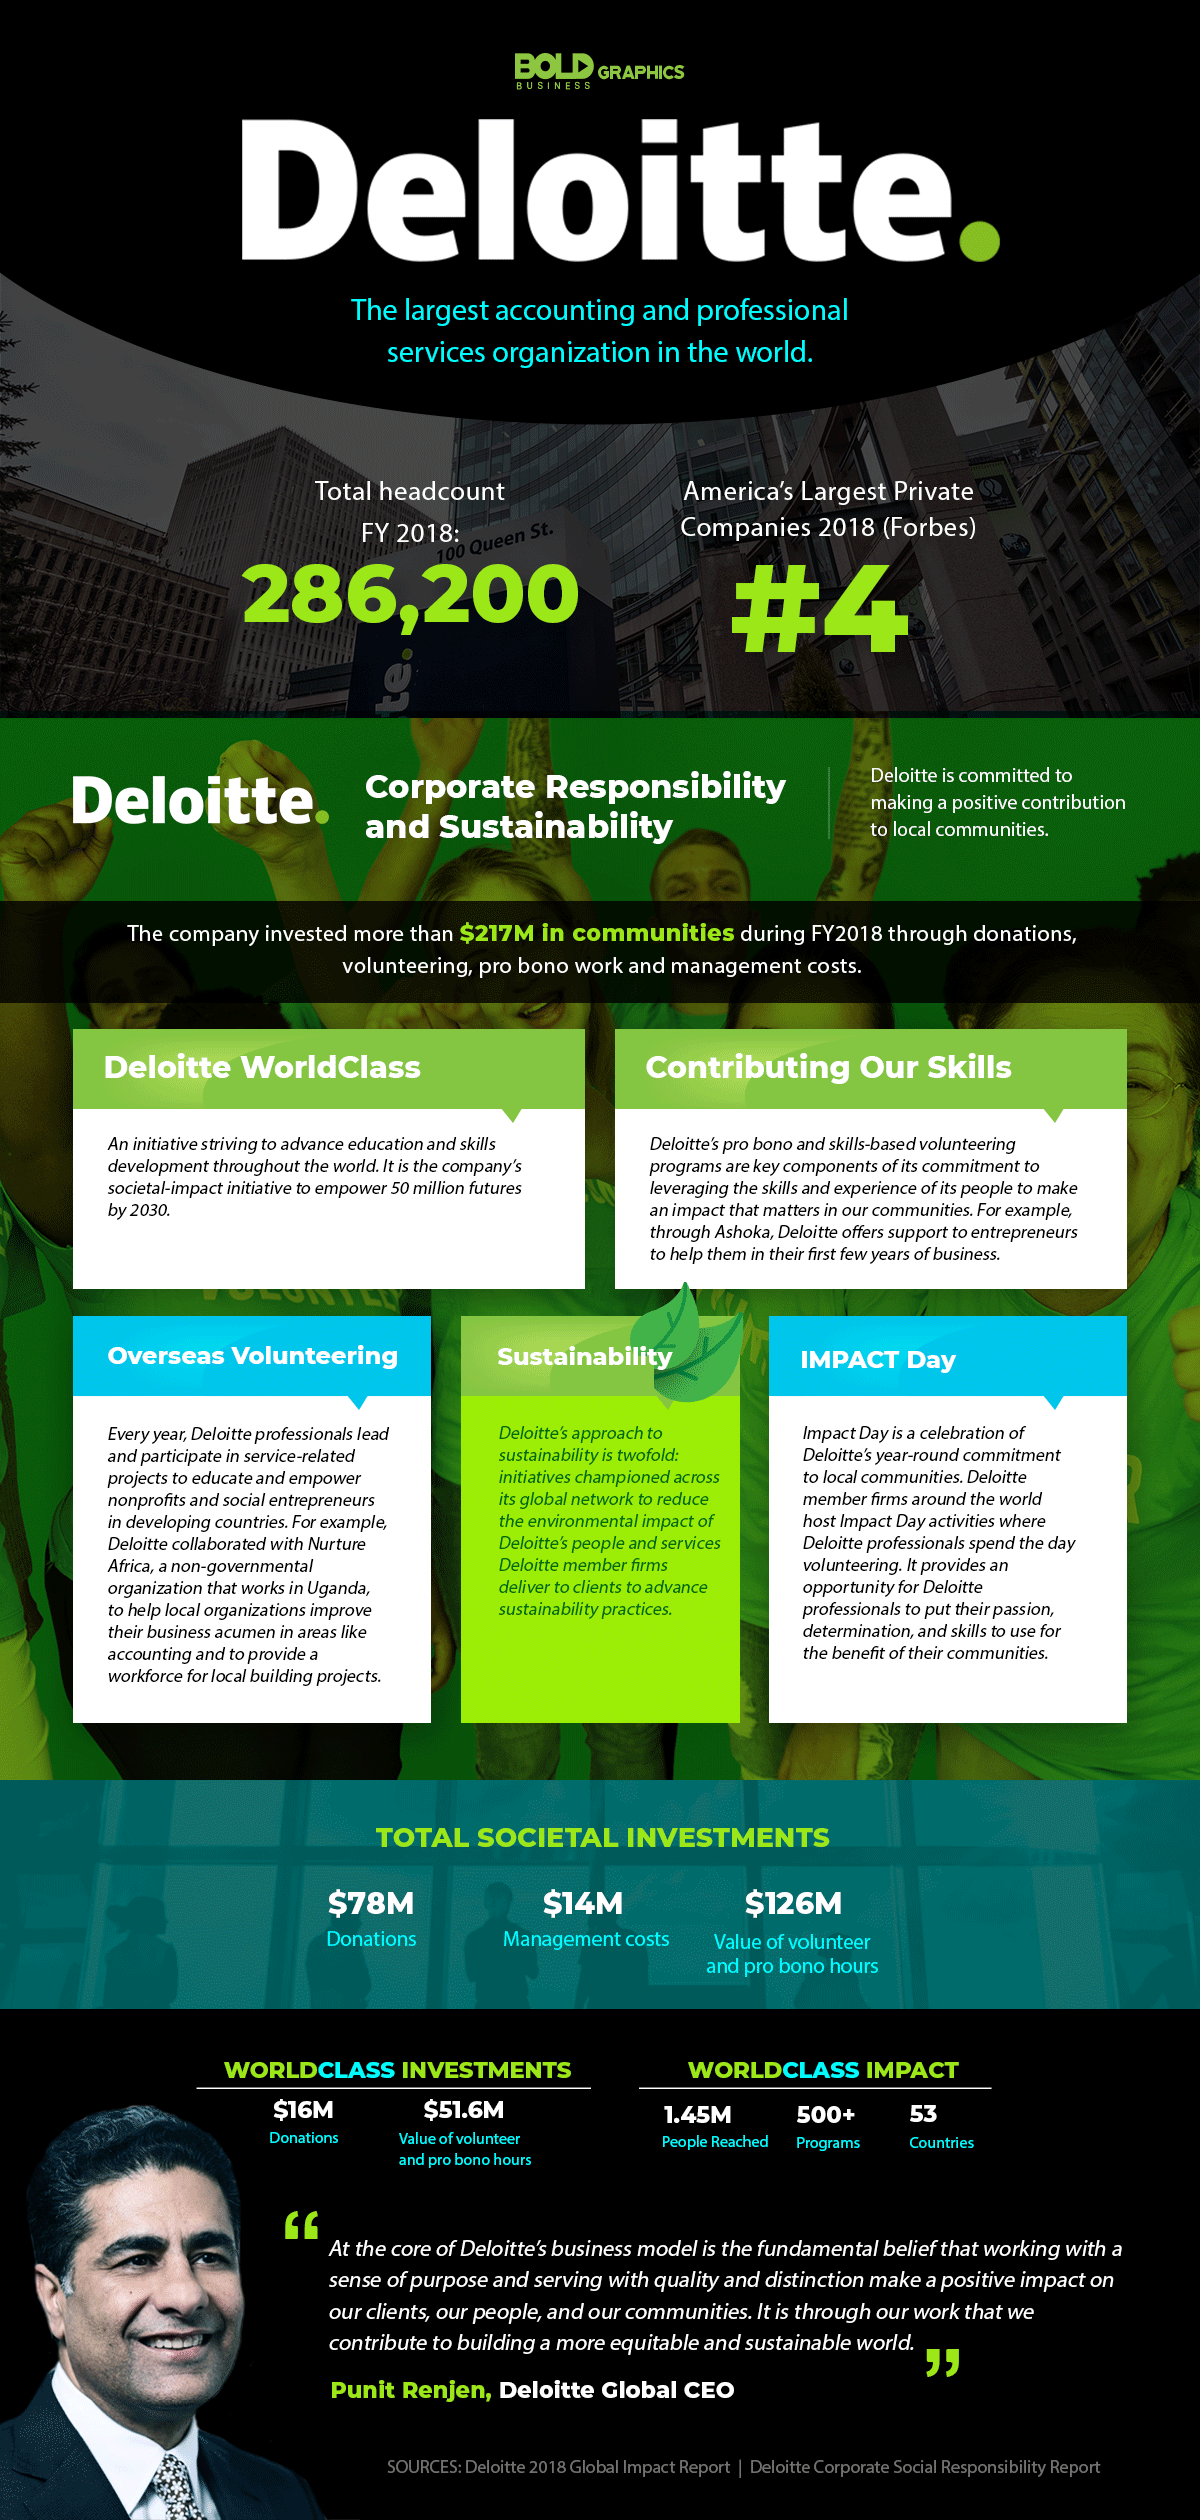 ographic about deloitte worldclass, the largest accounting and professional services organization in the world.